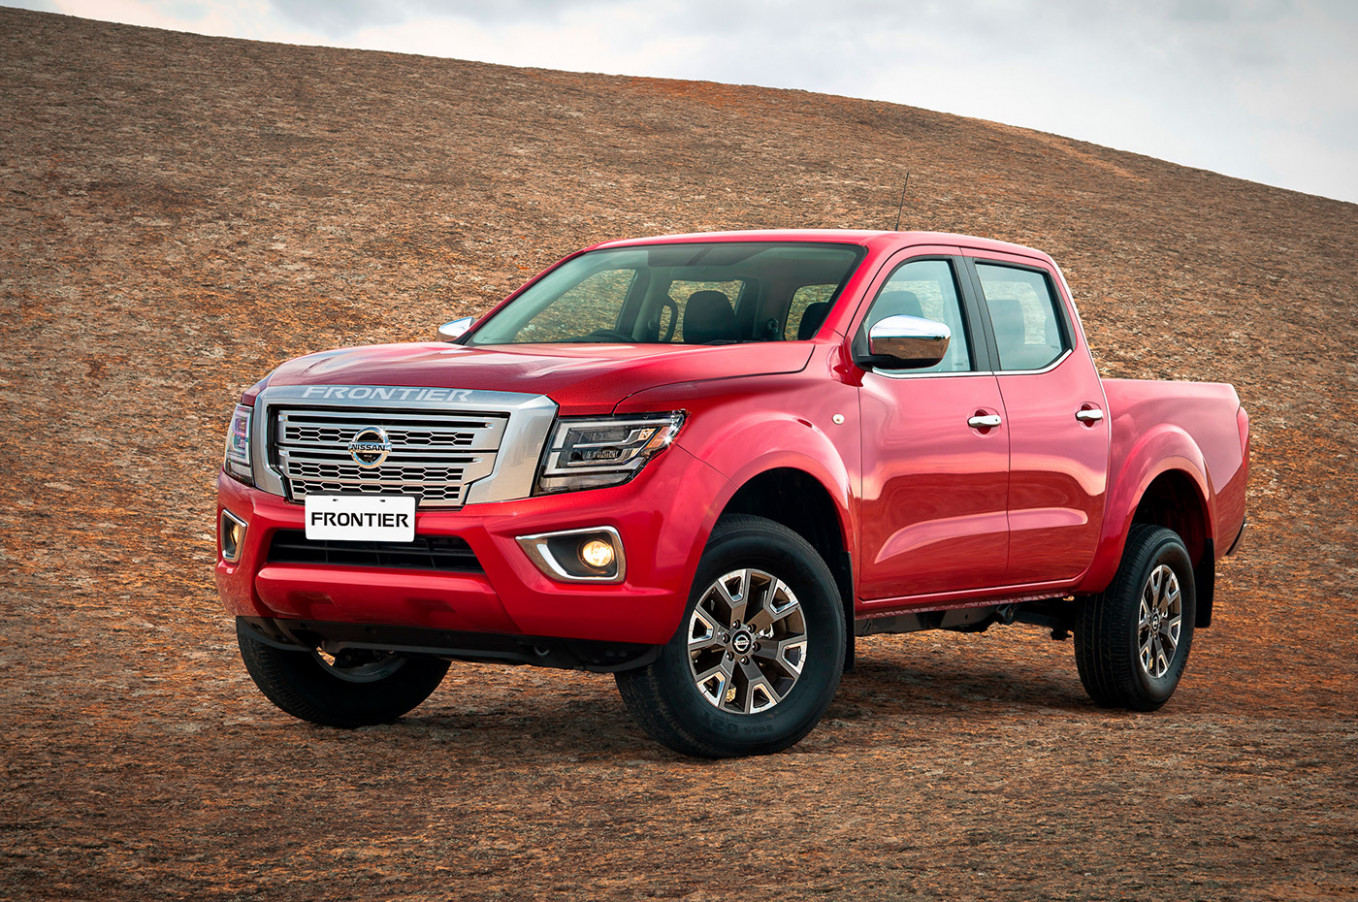 New Concept Nissan Frontier 2022 Release Date